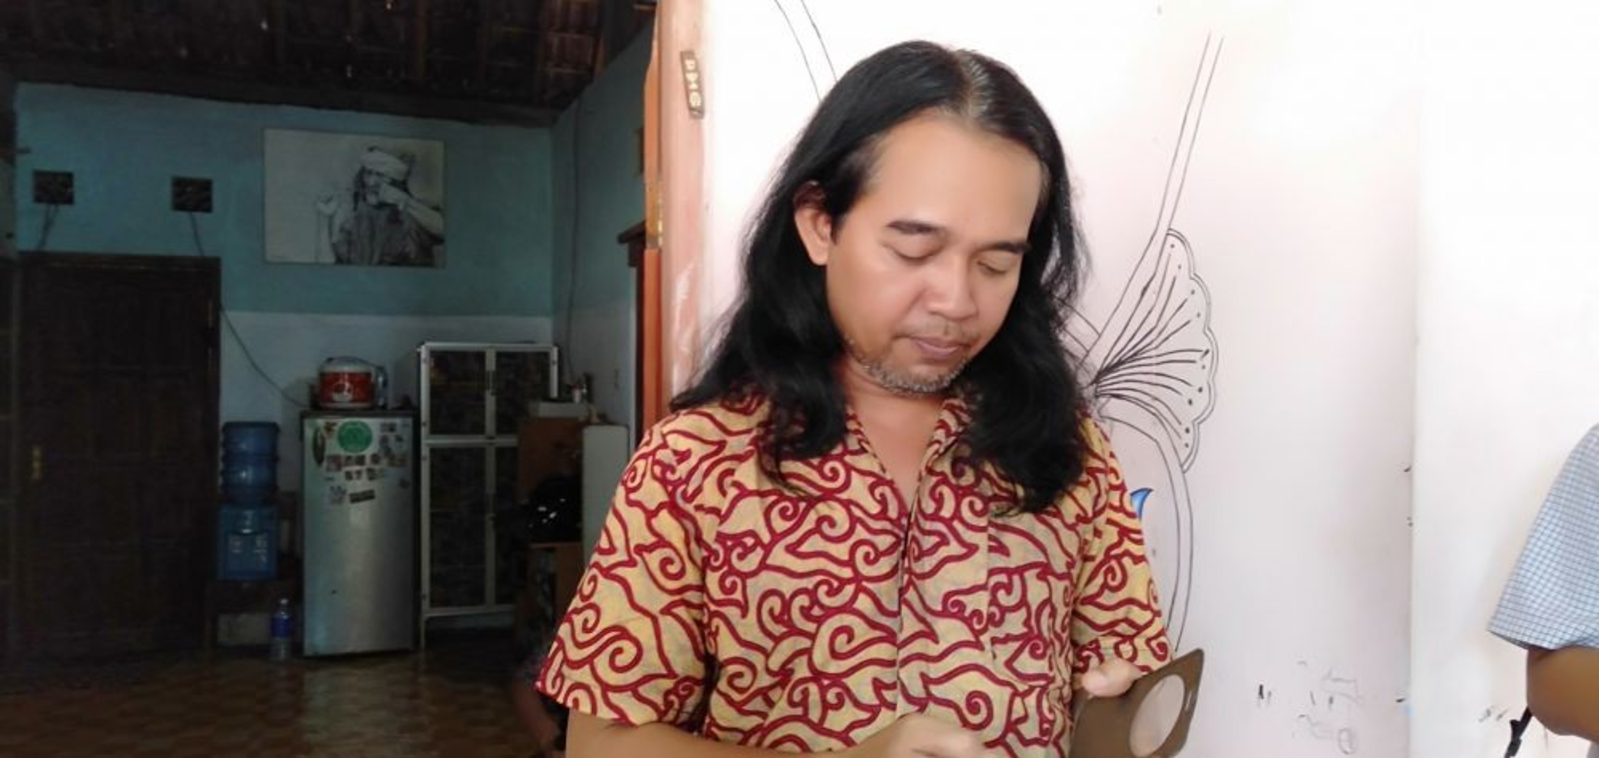 INDONESIA_-_0402_-_Slamet_-_Slamet_Sumiarto_is_told_to_leave_Karet_village_due_to_his_being_non_Muslim_resident_-_courtesy_of_IDNtimes_in_Yogyakarta